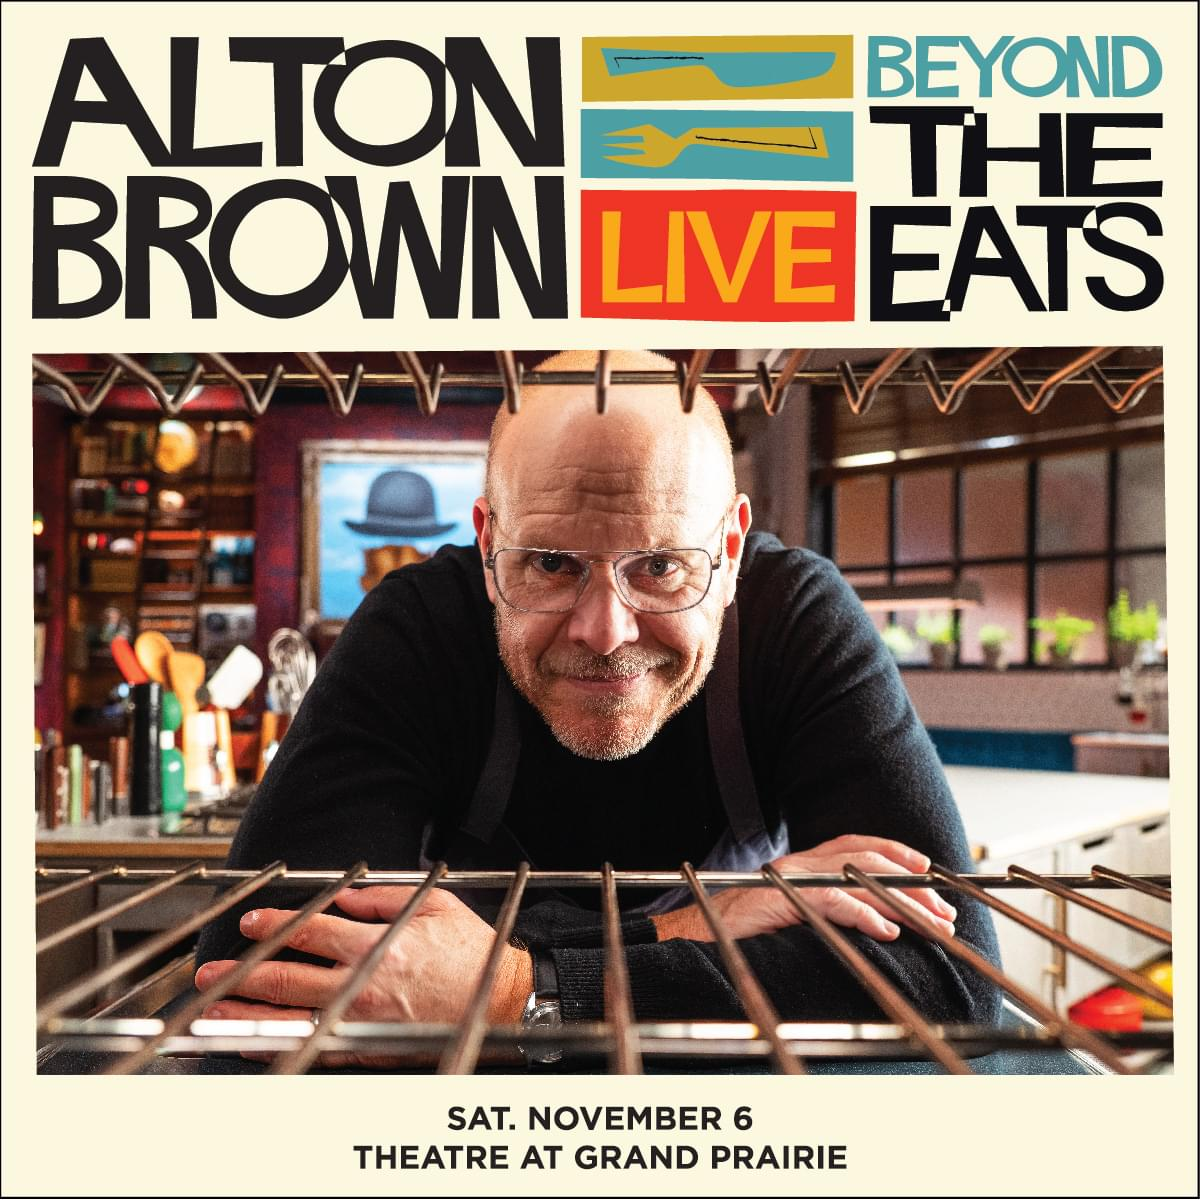 Alton Brown Live: Beyond The Eats